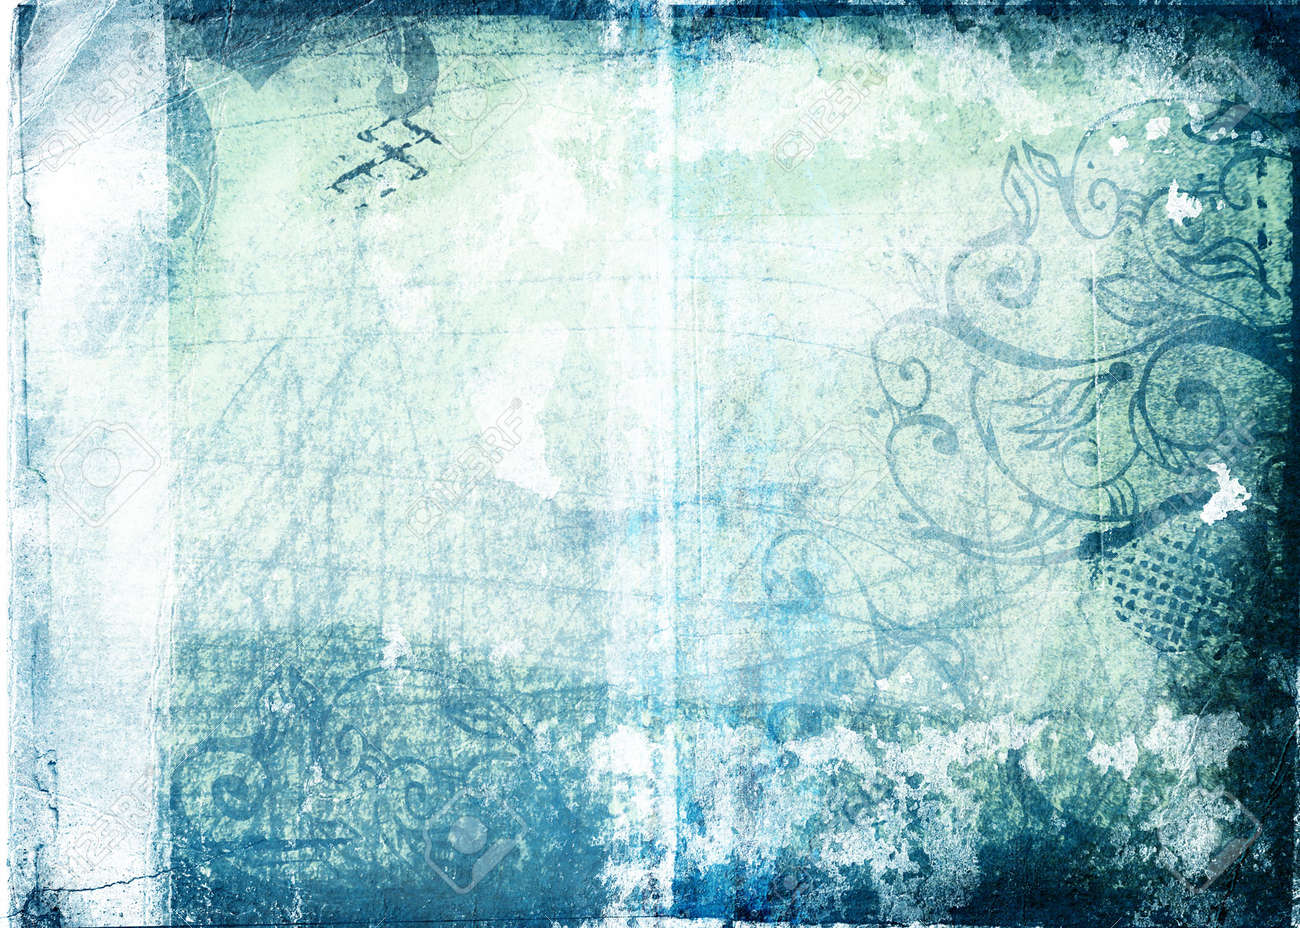 Grunge Paper Background With Scratches Designs Torn Patches